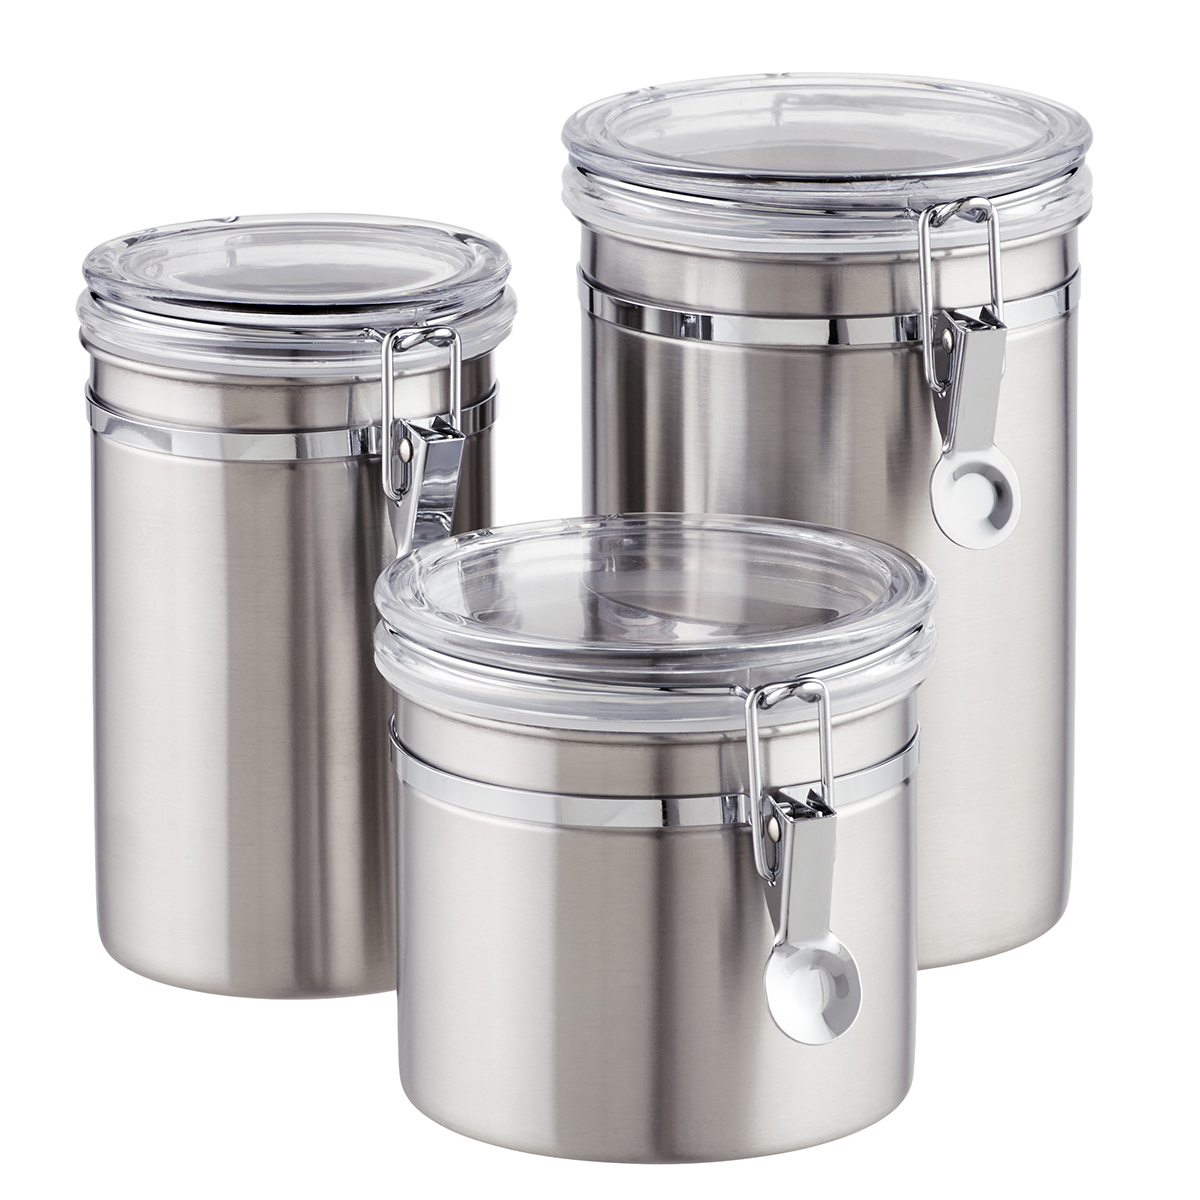 canisters kitchen aid fridge stainless steel brushed the container store